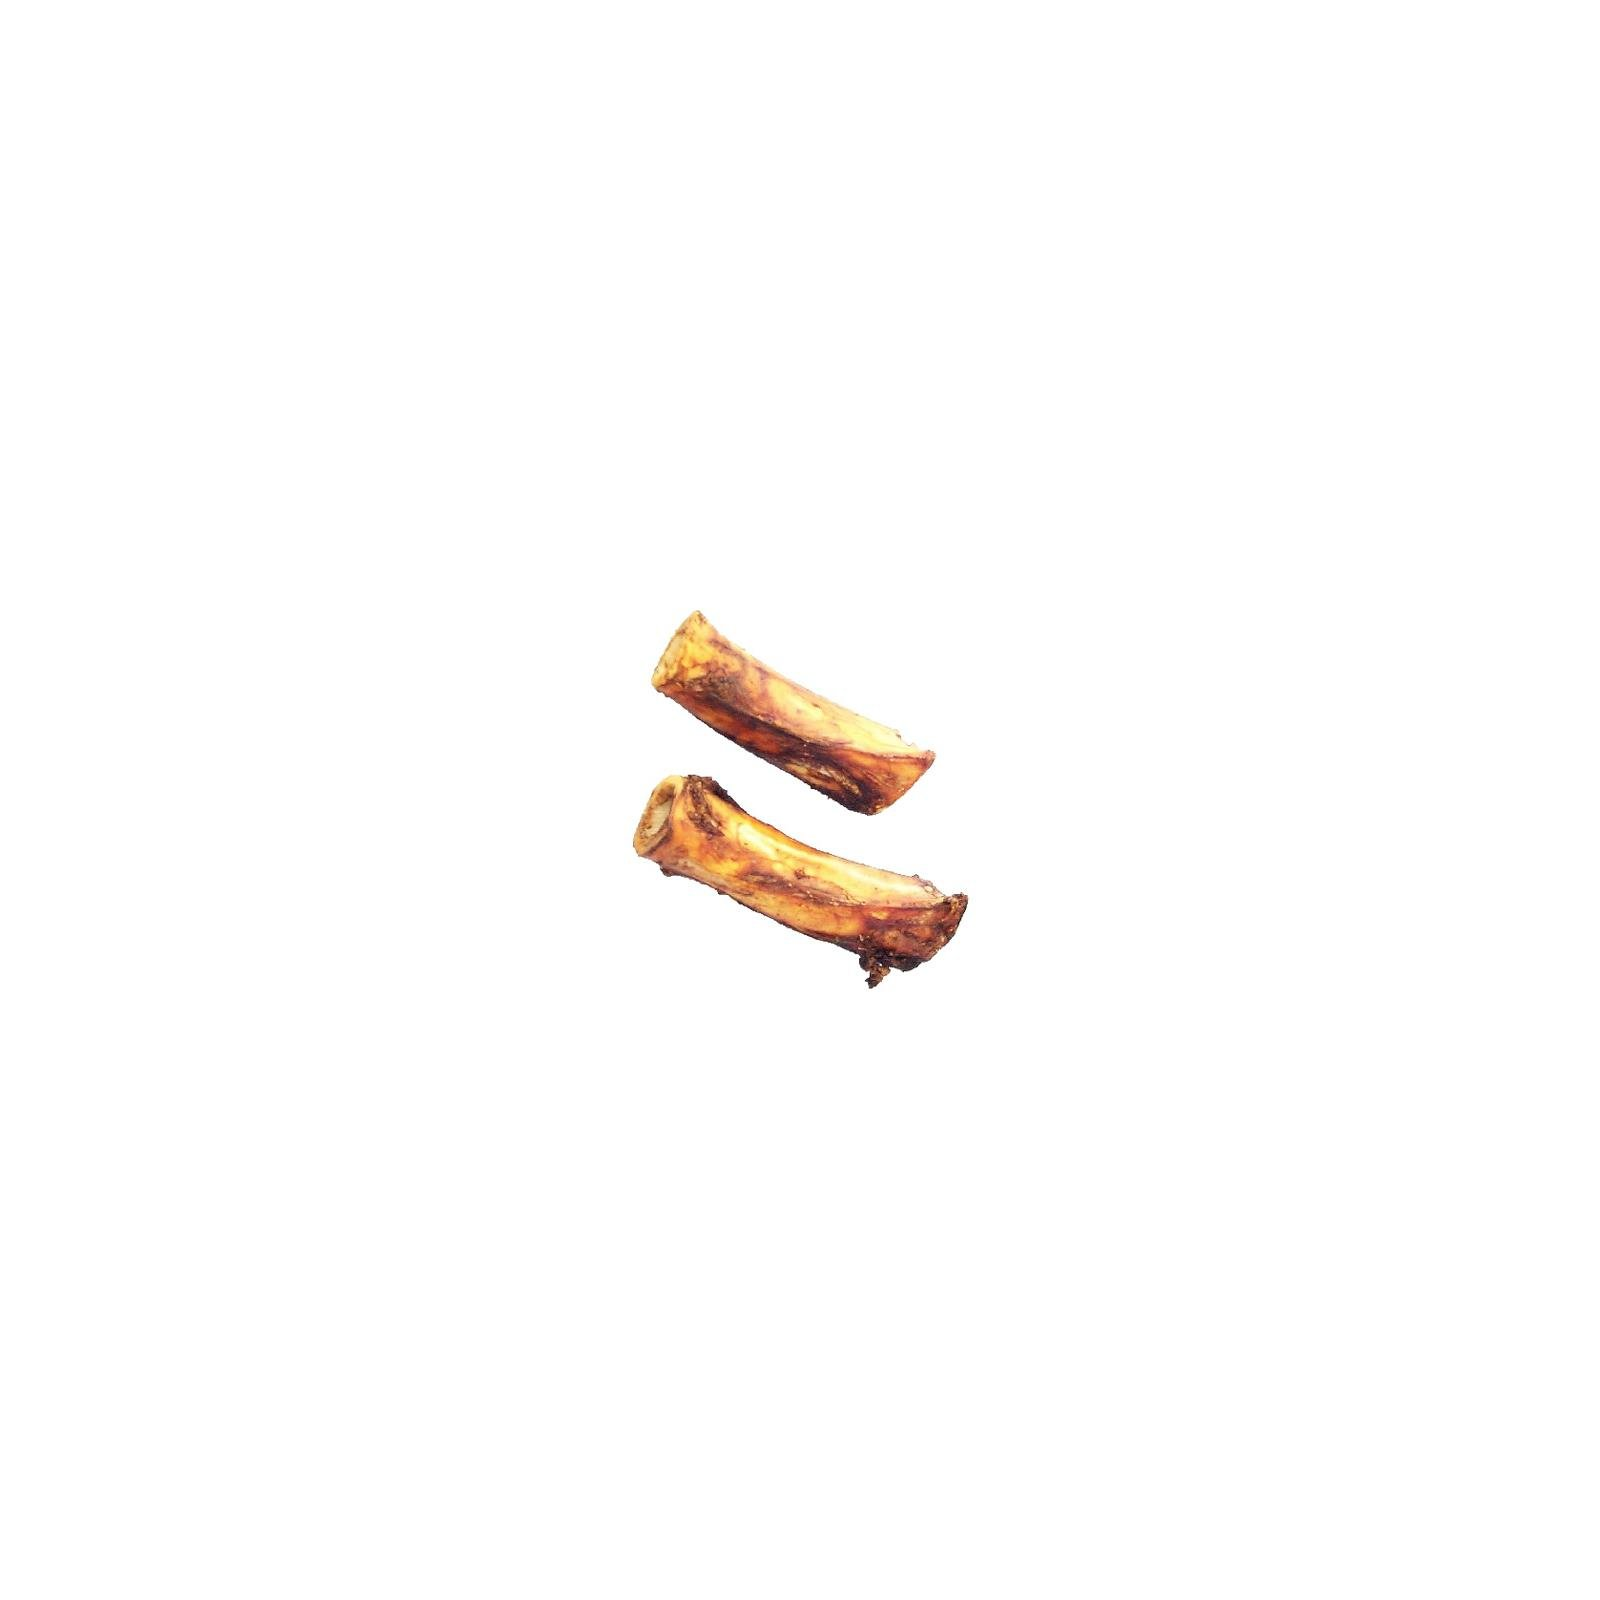 Jones Natural Chews 633 Dog Treats, Beef Center Bone, 4-In., 2-Pk. - Quantity 20